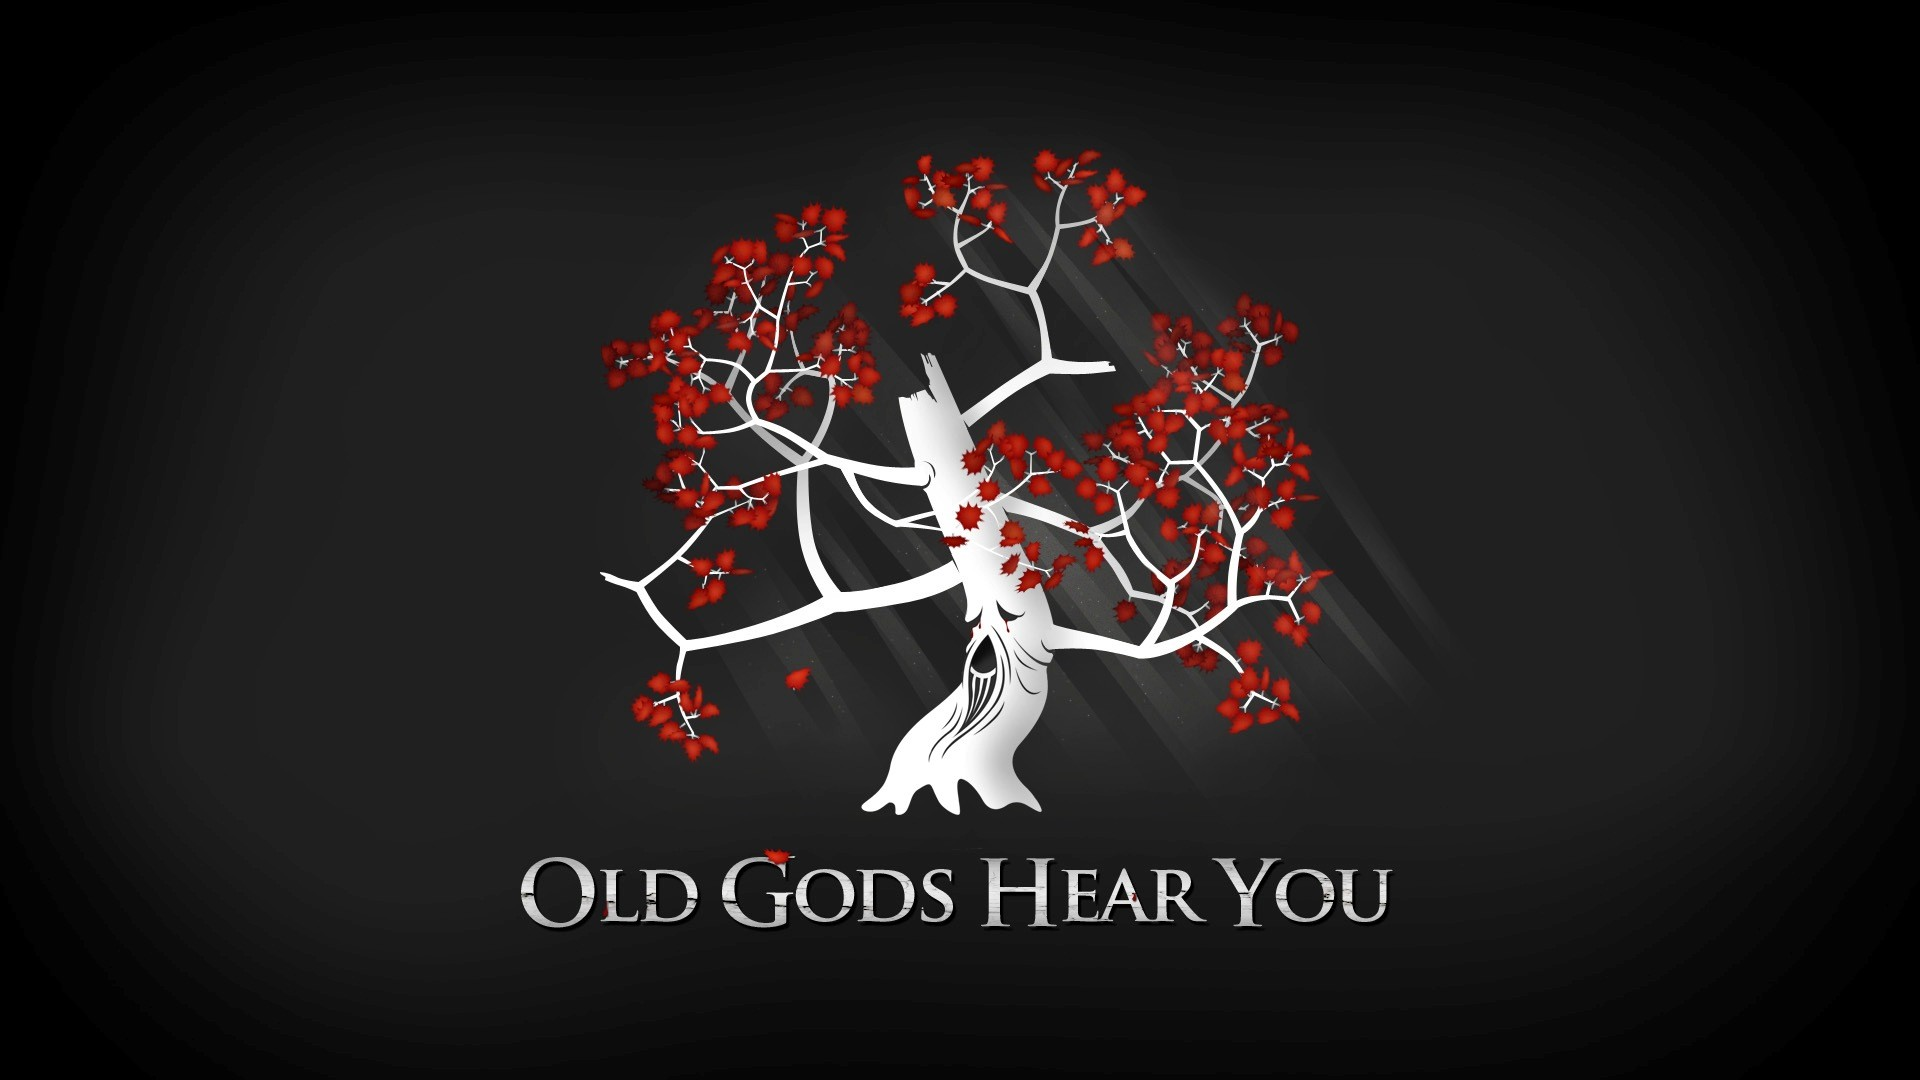 Game Of Thrones Old Gods Hear You Quotes Photoshoot Full HD Wallpaper